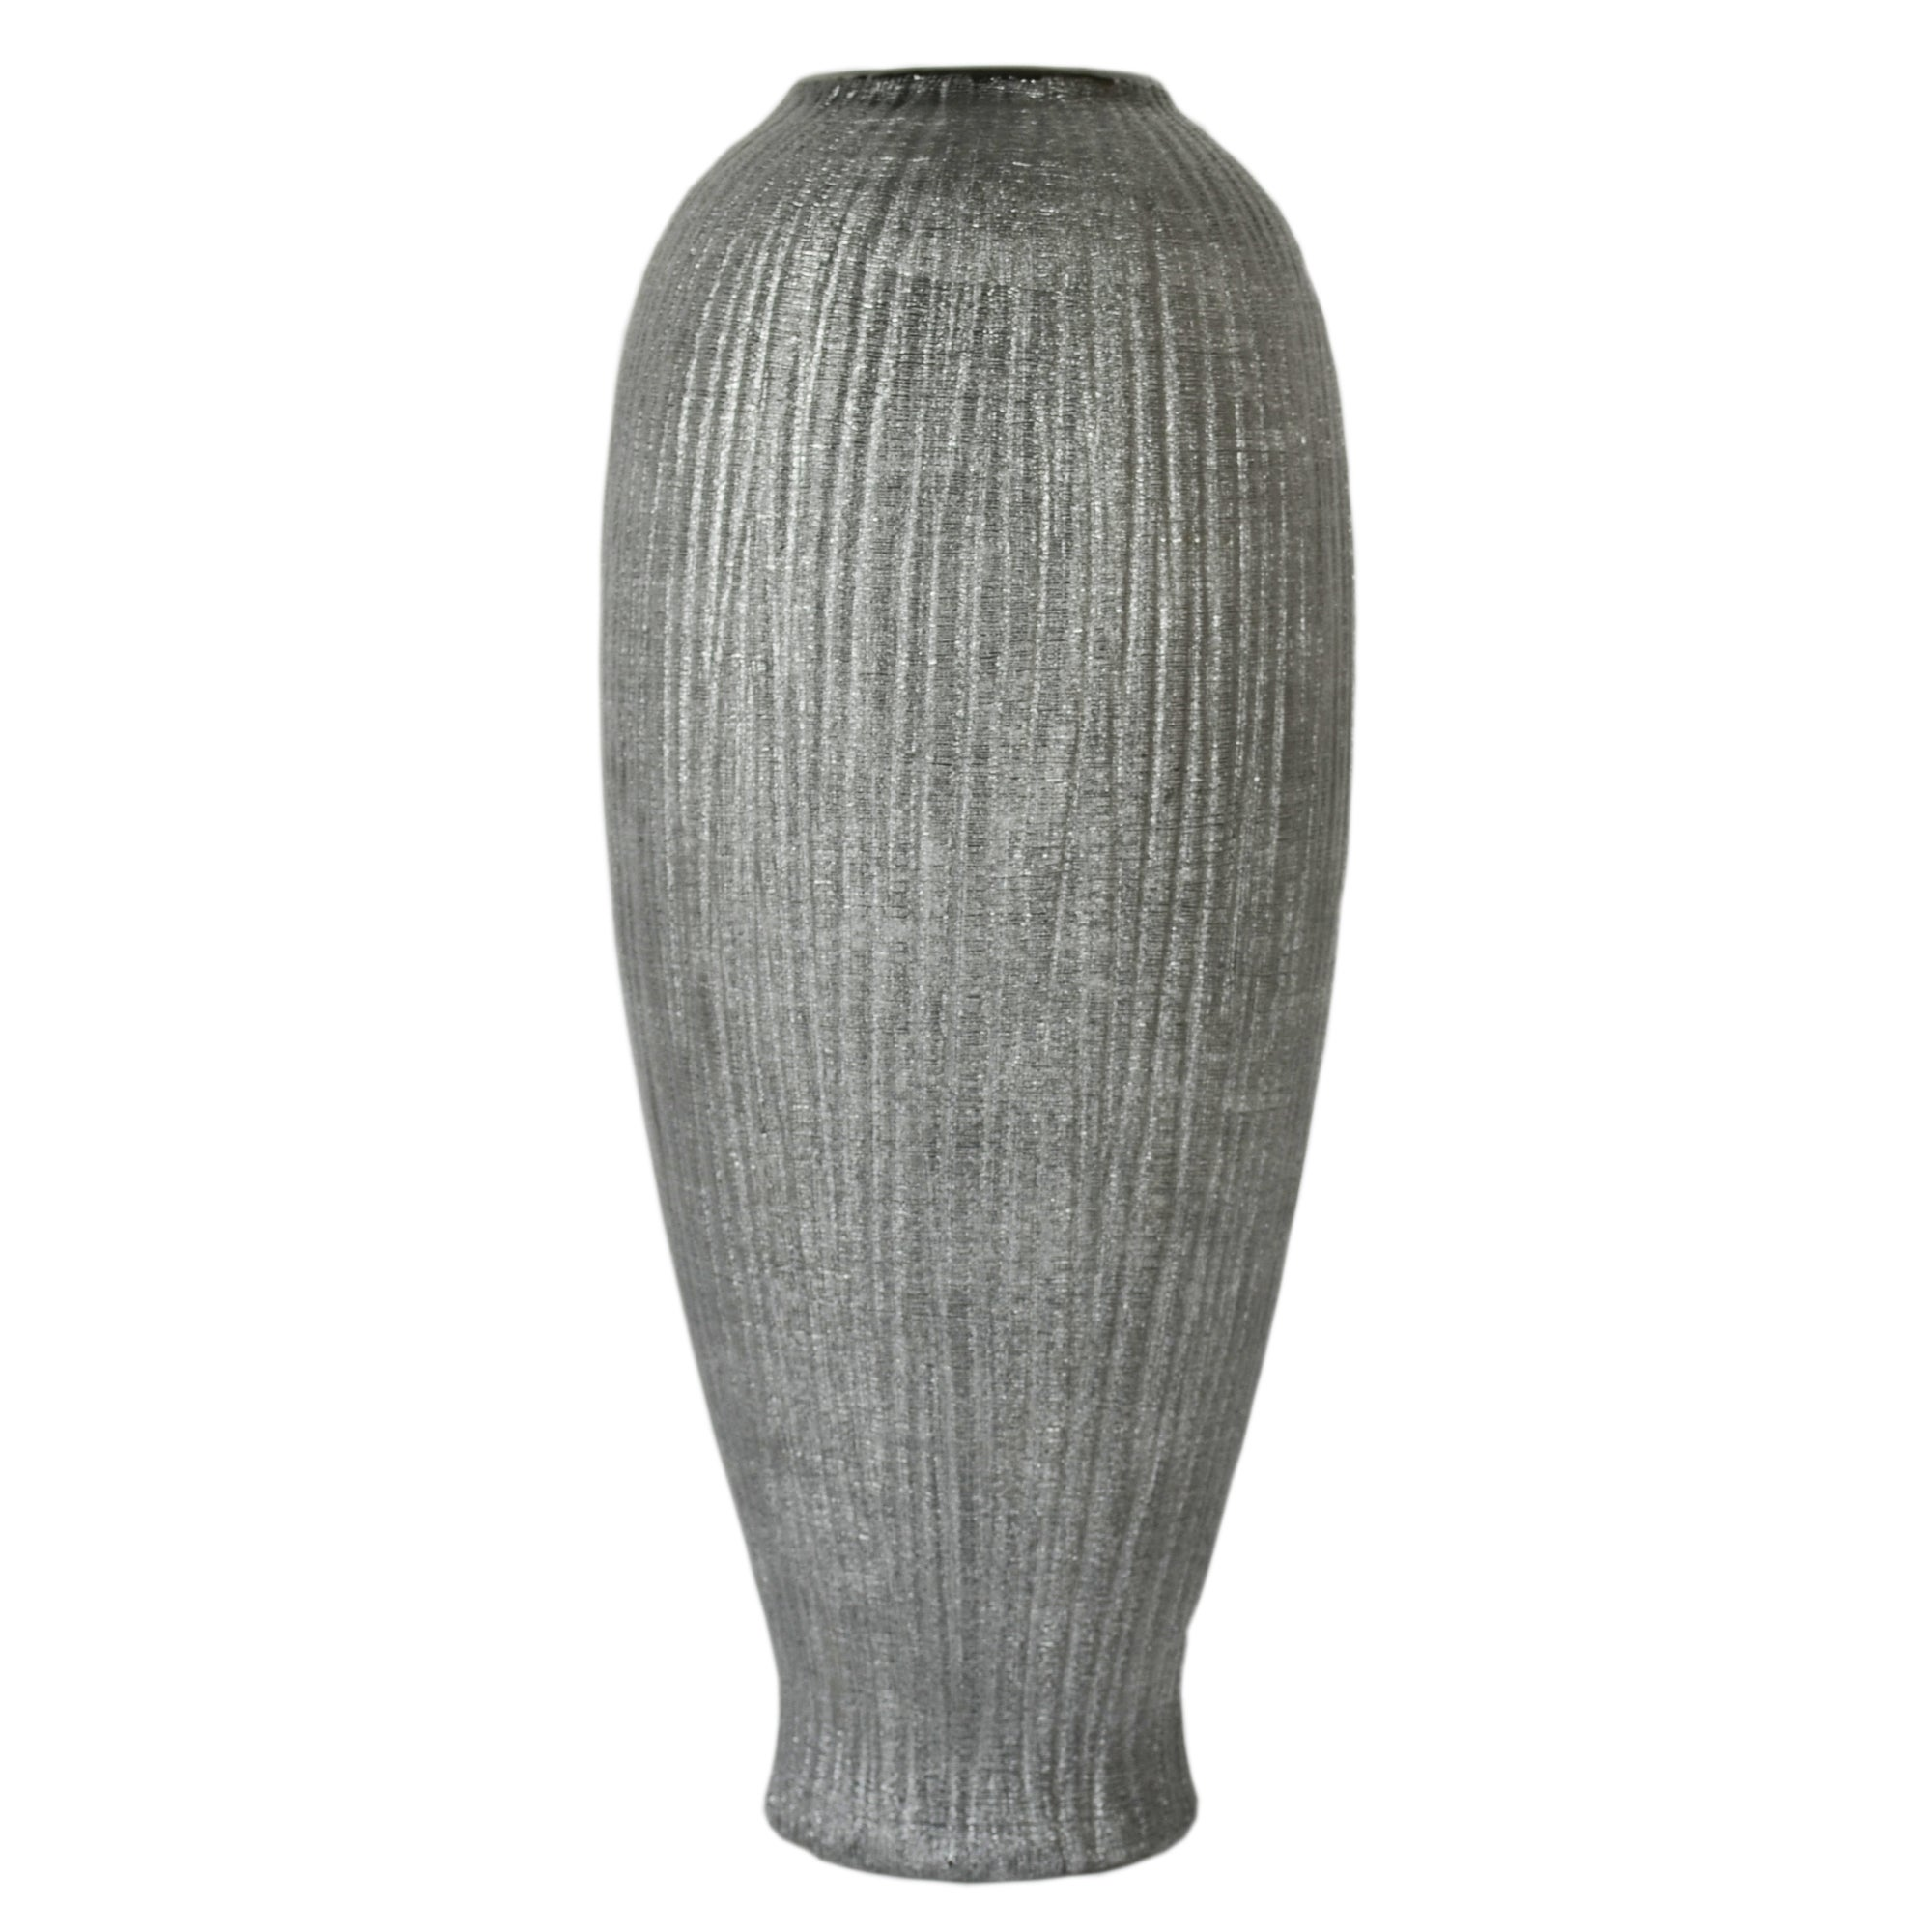 New Naturals Collection Ridged Vase